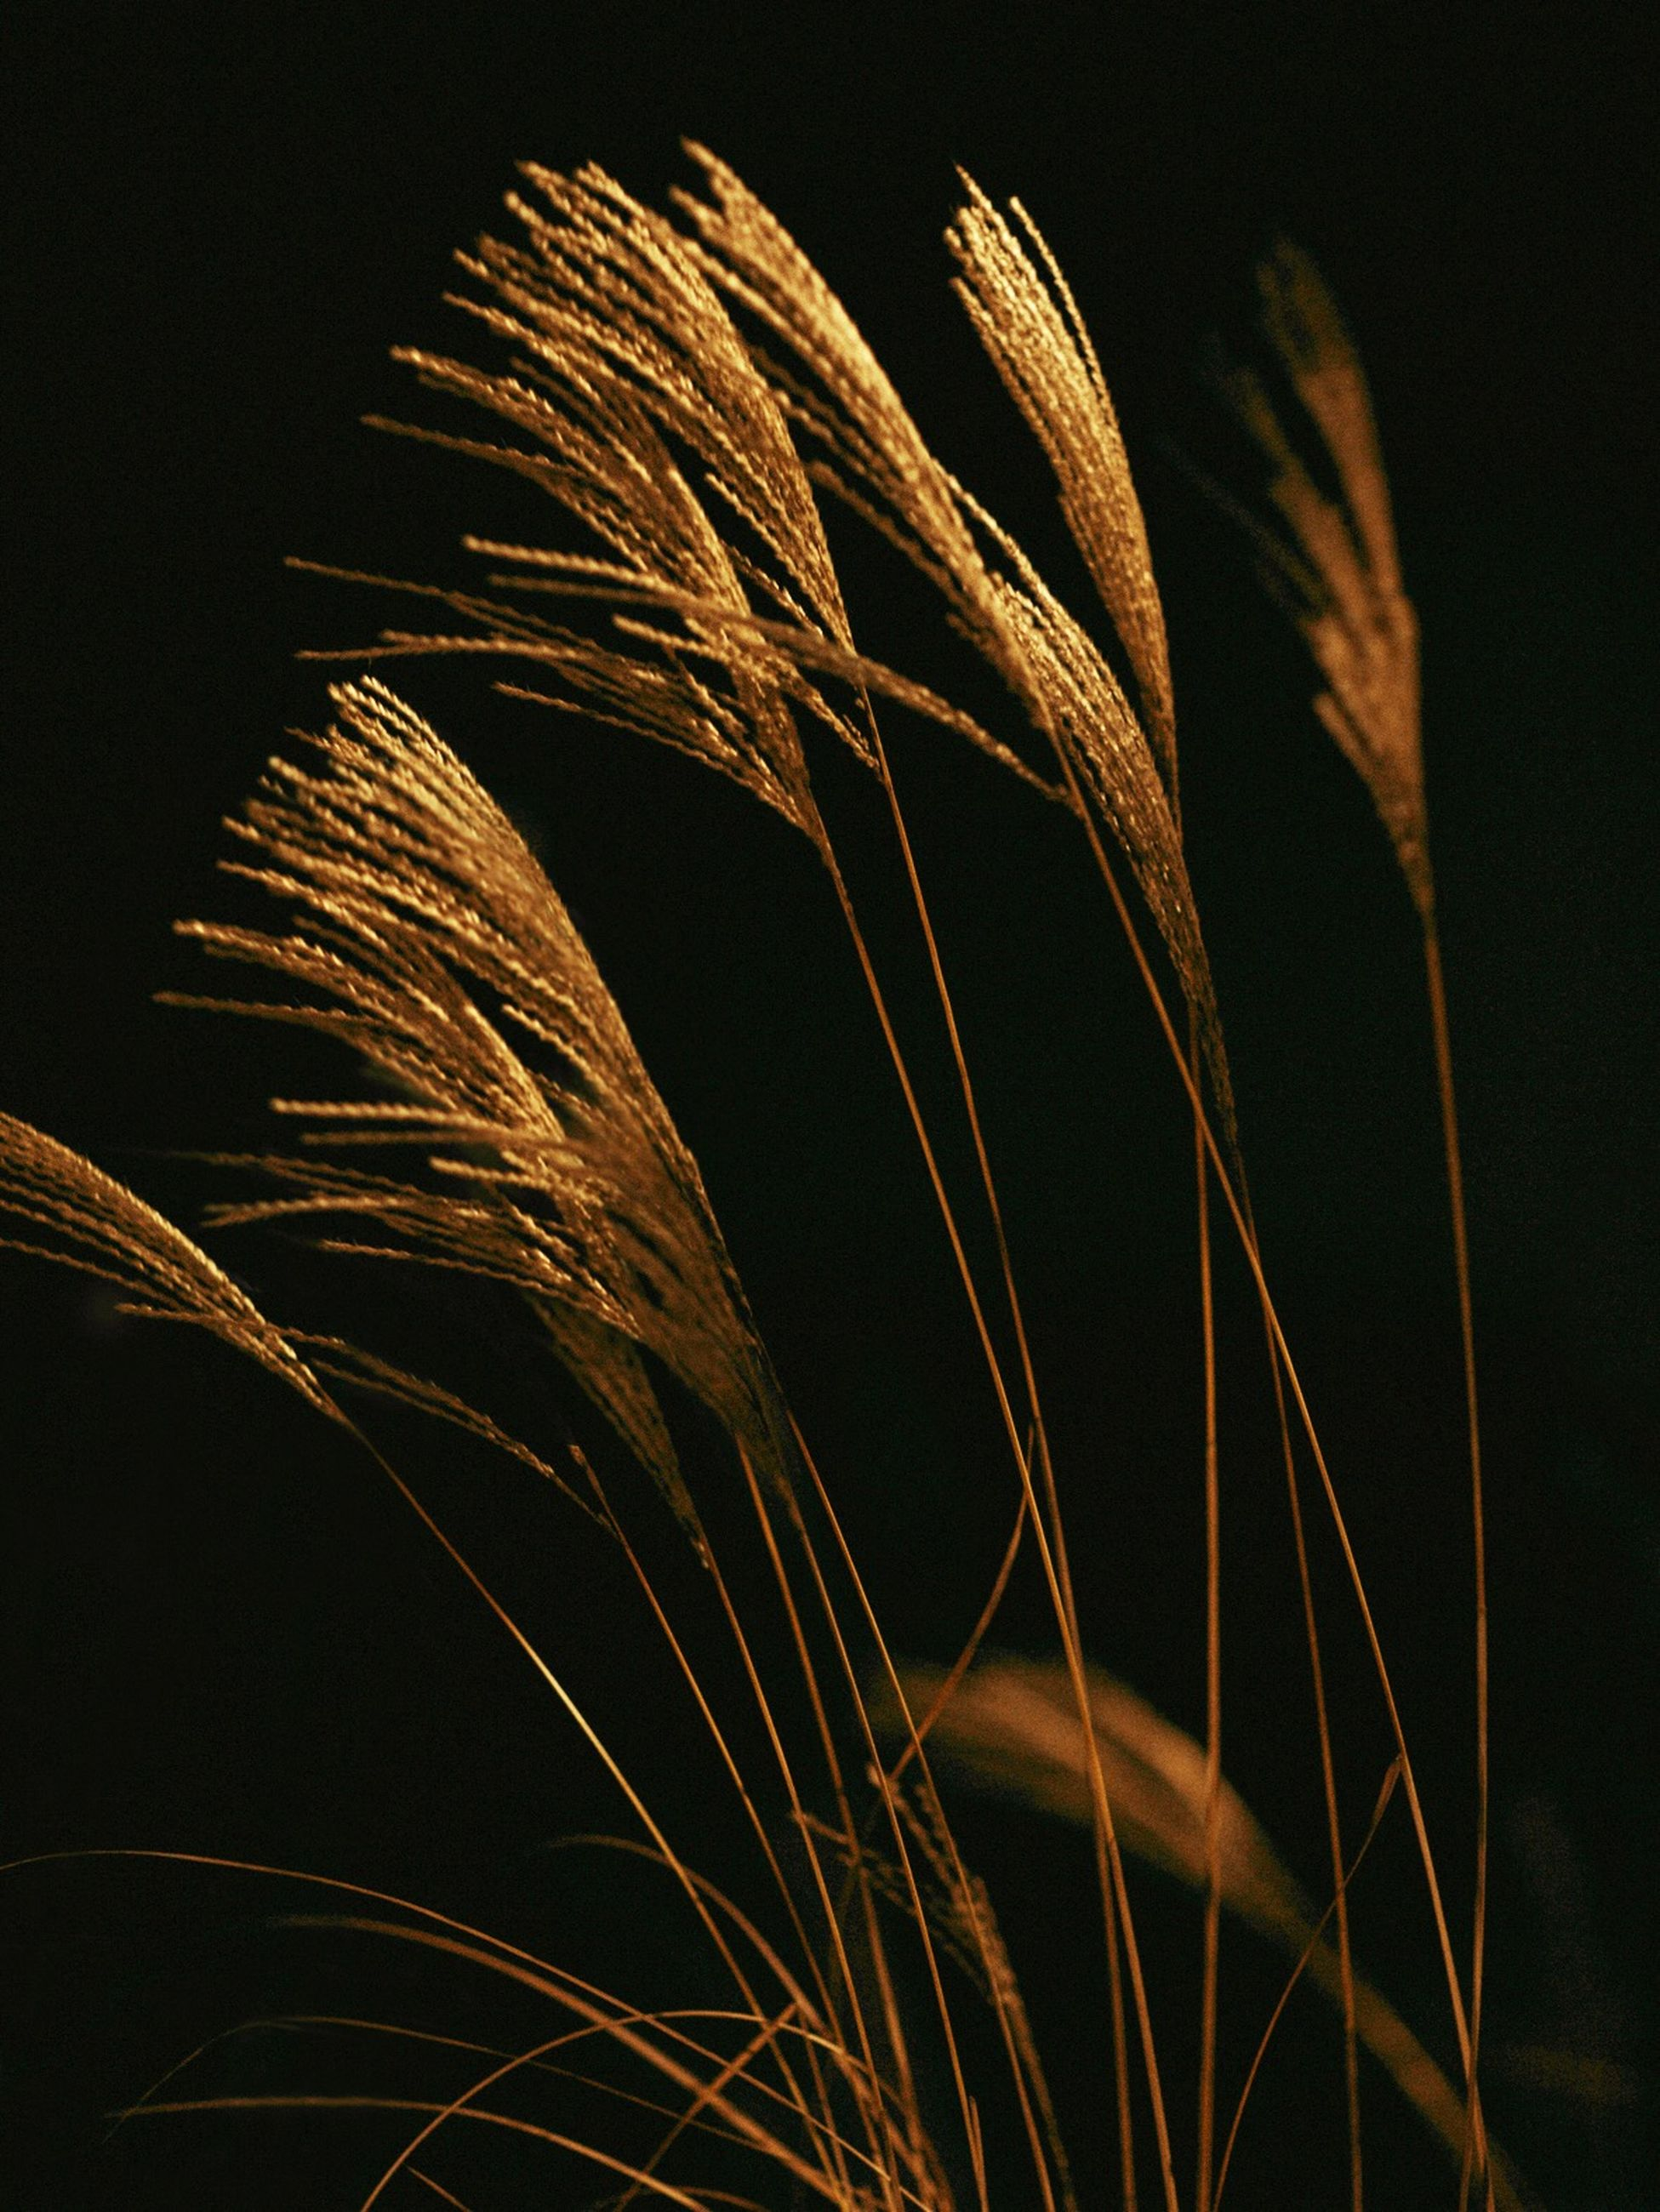 night, close-up, no people, plant, growth, nature, beauty in nature, illuminated, focus on foreground, outdoors, grass, motion, sky, selective focus, studio shot, glowing, low angle view, dark, leaf, plant part, stalk